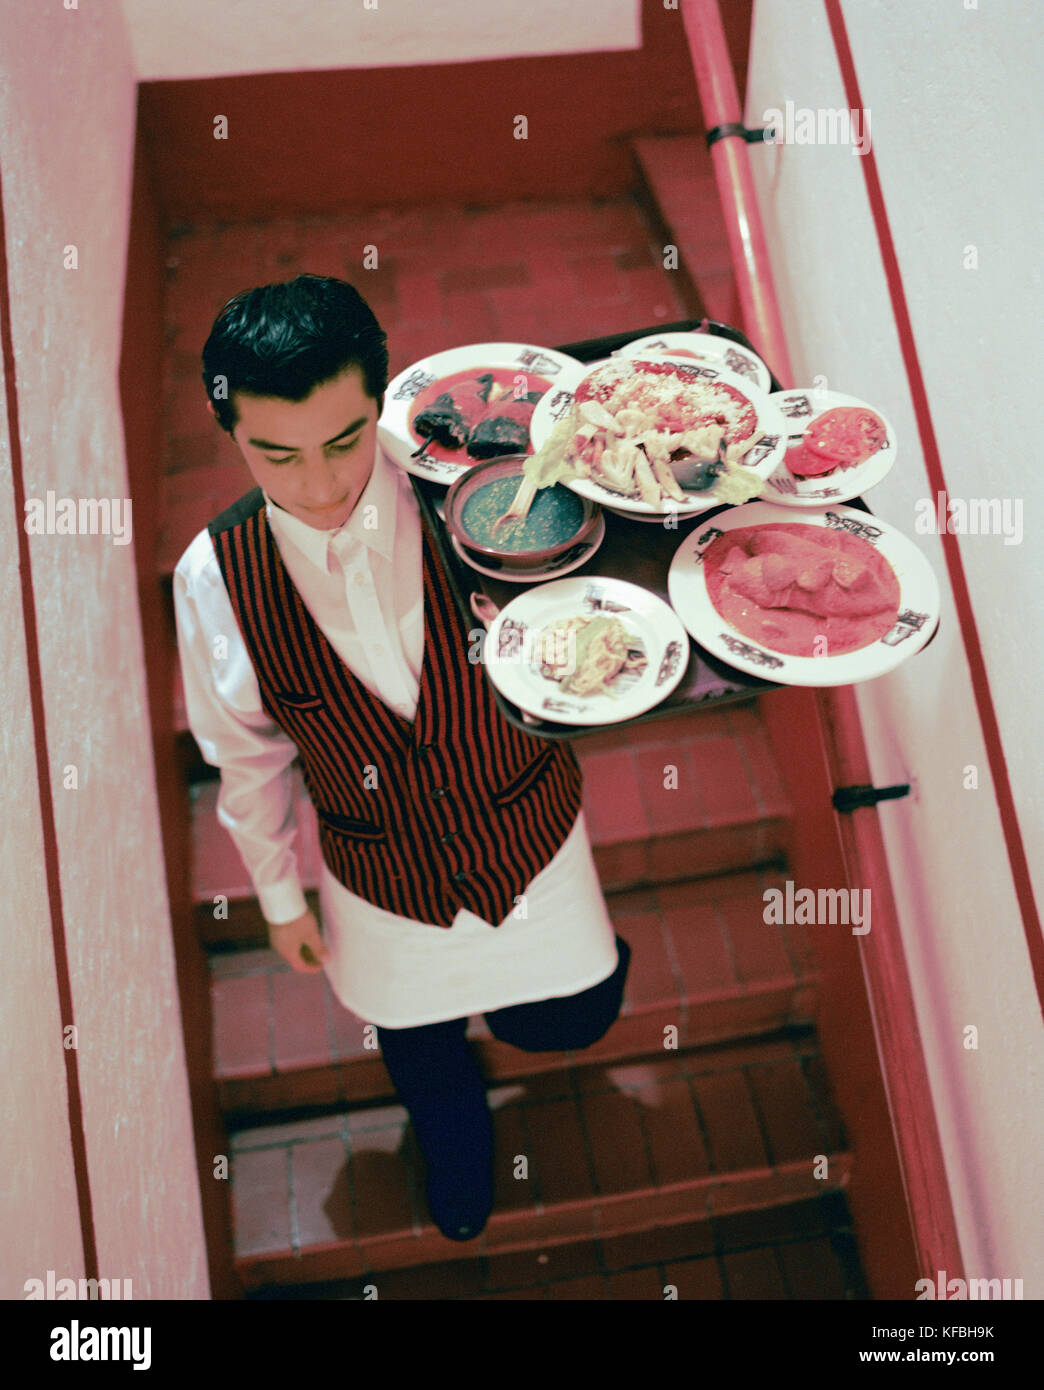 MEXICO, Mexico City, Fonda El Refugio Restaurant,  waiter moving down on staircase carrying tray of food, elevated - Stock Image